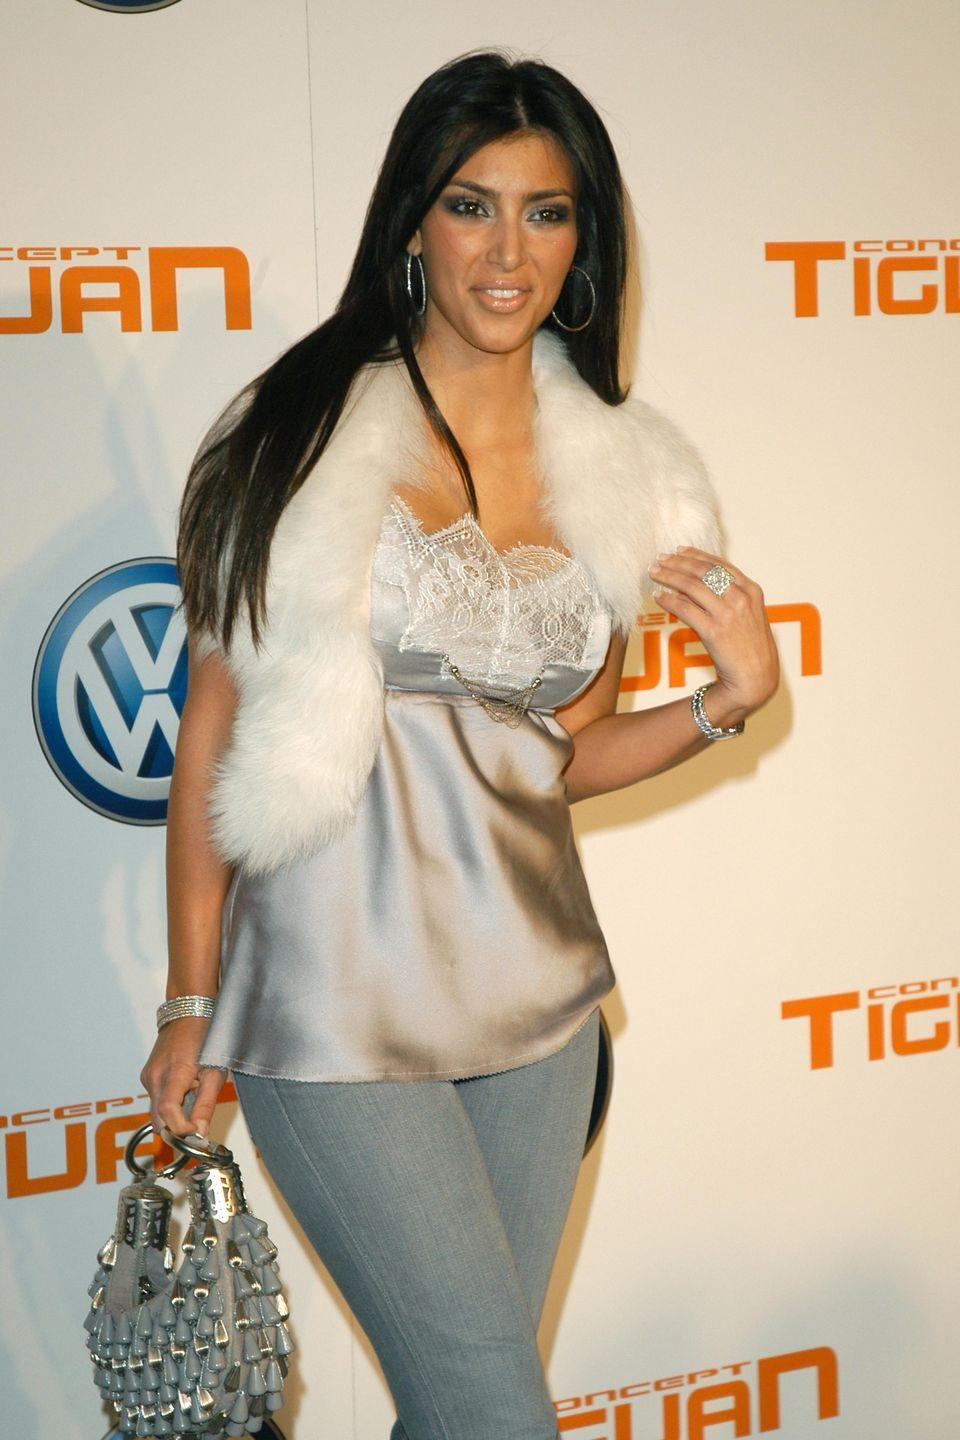 <p>Back in the early 2000's, Kim Kardashian West stepped onto the scene as Paris Hilton's best friend and occasional stylist. She slowly emerged as a star of her own rite, thanks to a sex tape and the start of her family's reality show, <em>Keeping Up With The Kardashians</em>. At this time, Kardashian West wore every trend imaginable and a <em>lot</em> of dark eye makeup. </p>